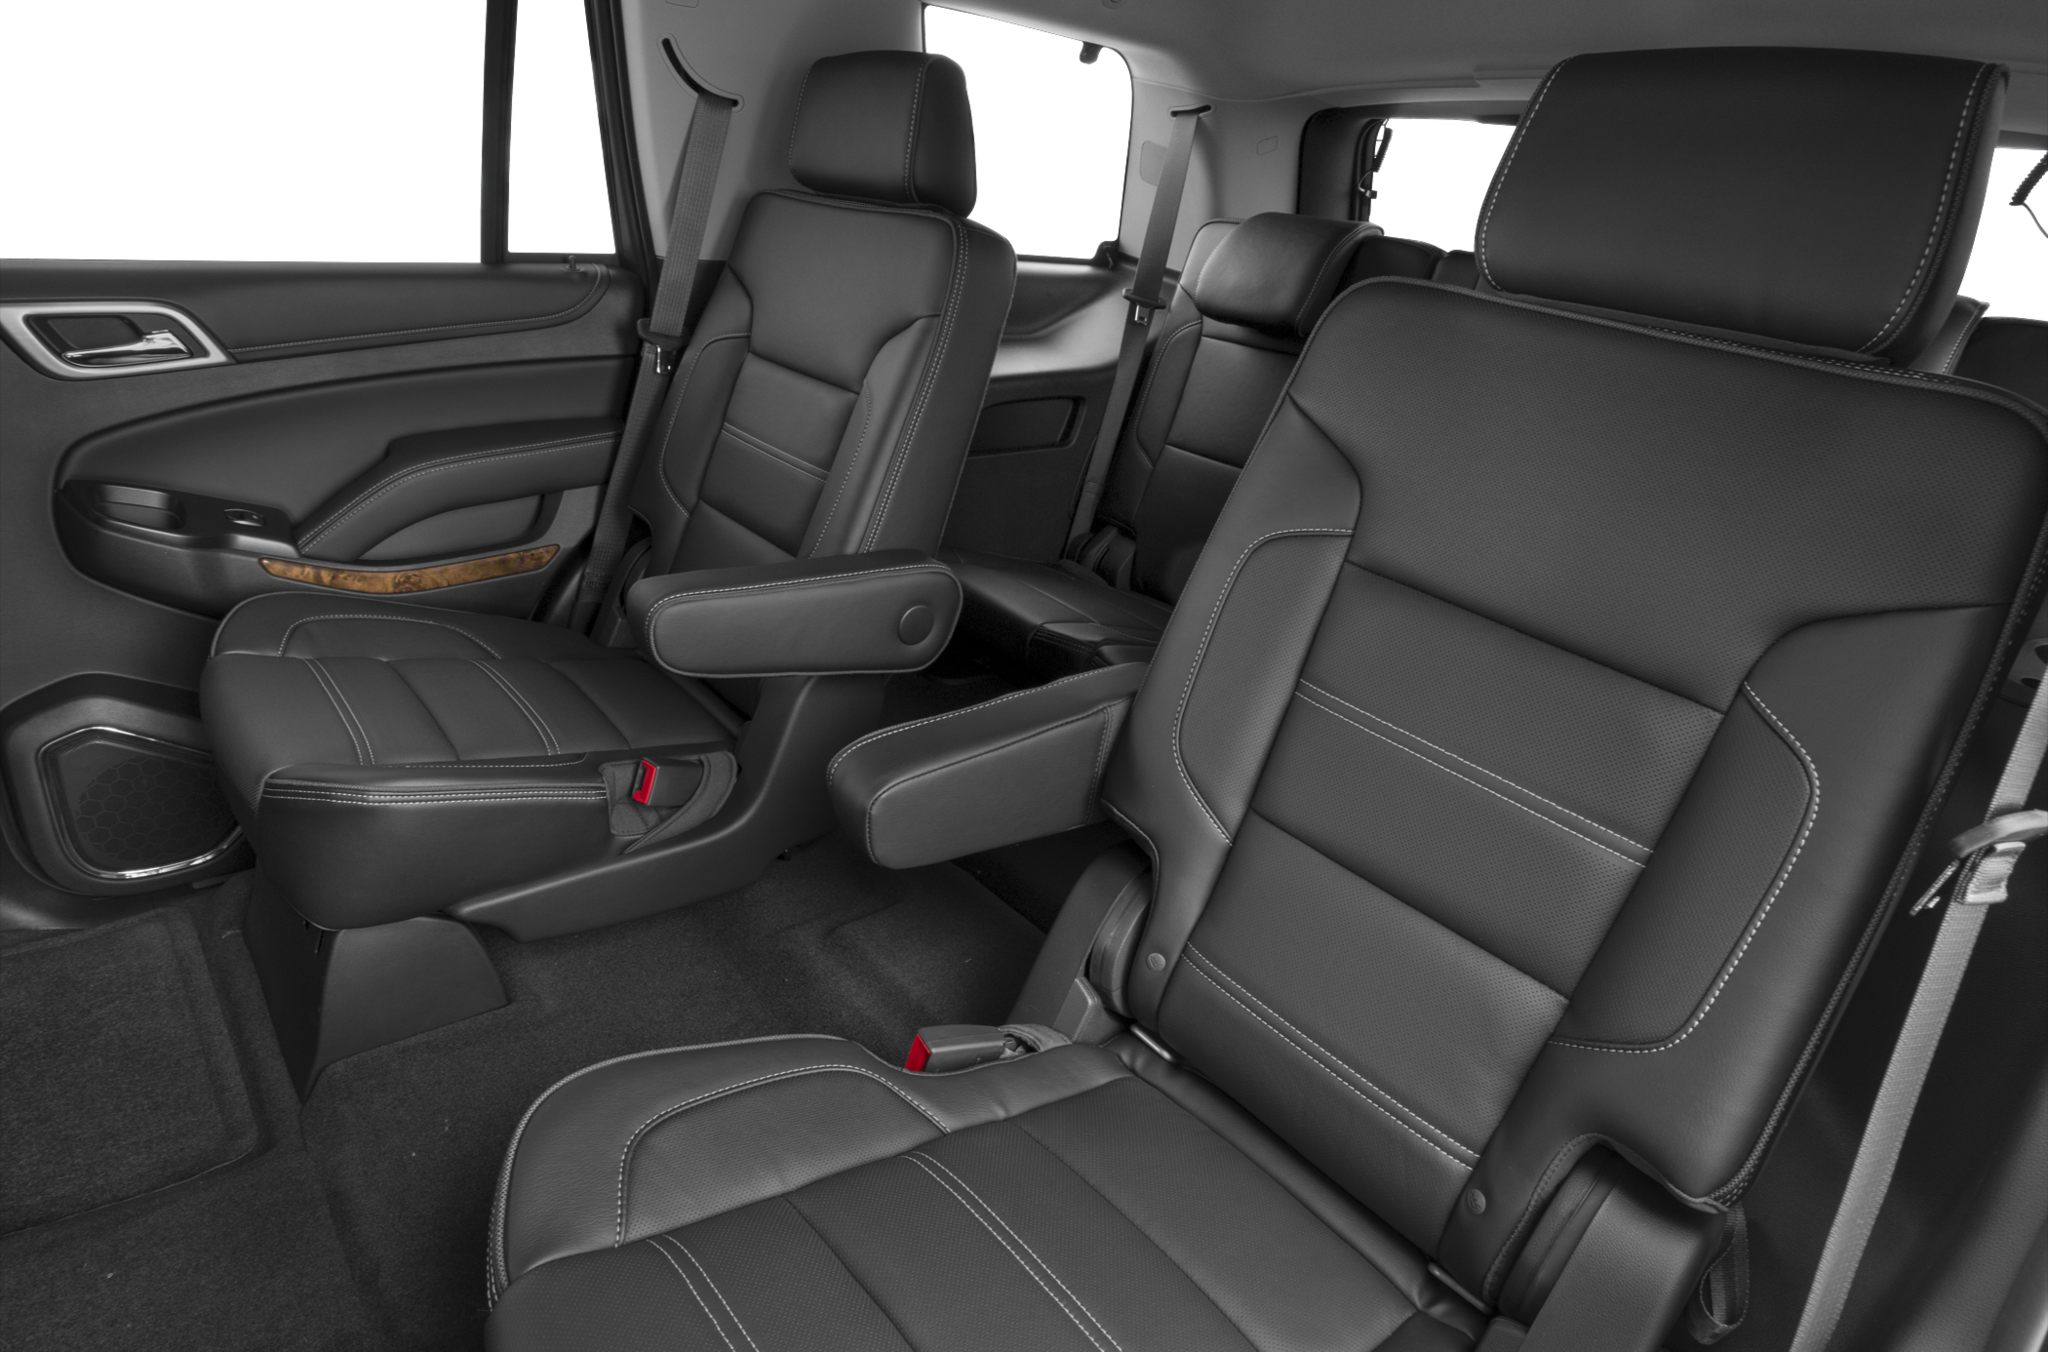 captain chairs suv chair with laptop stand india 10 best used suvs s gmc yukon captains